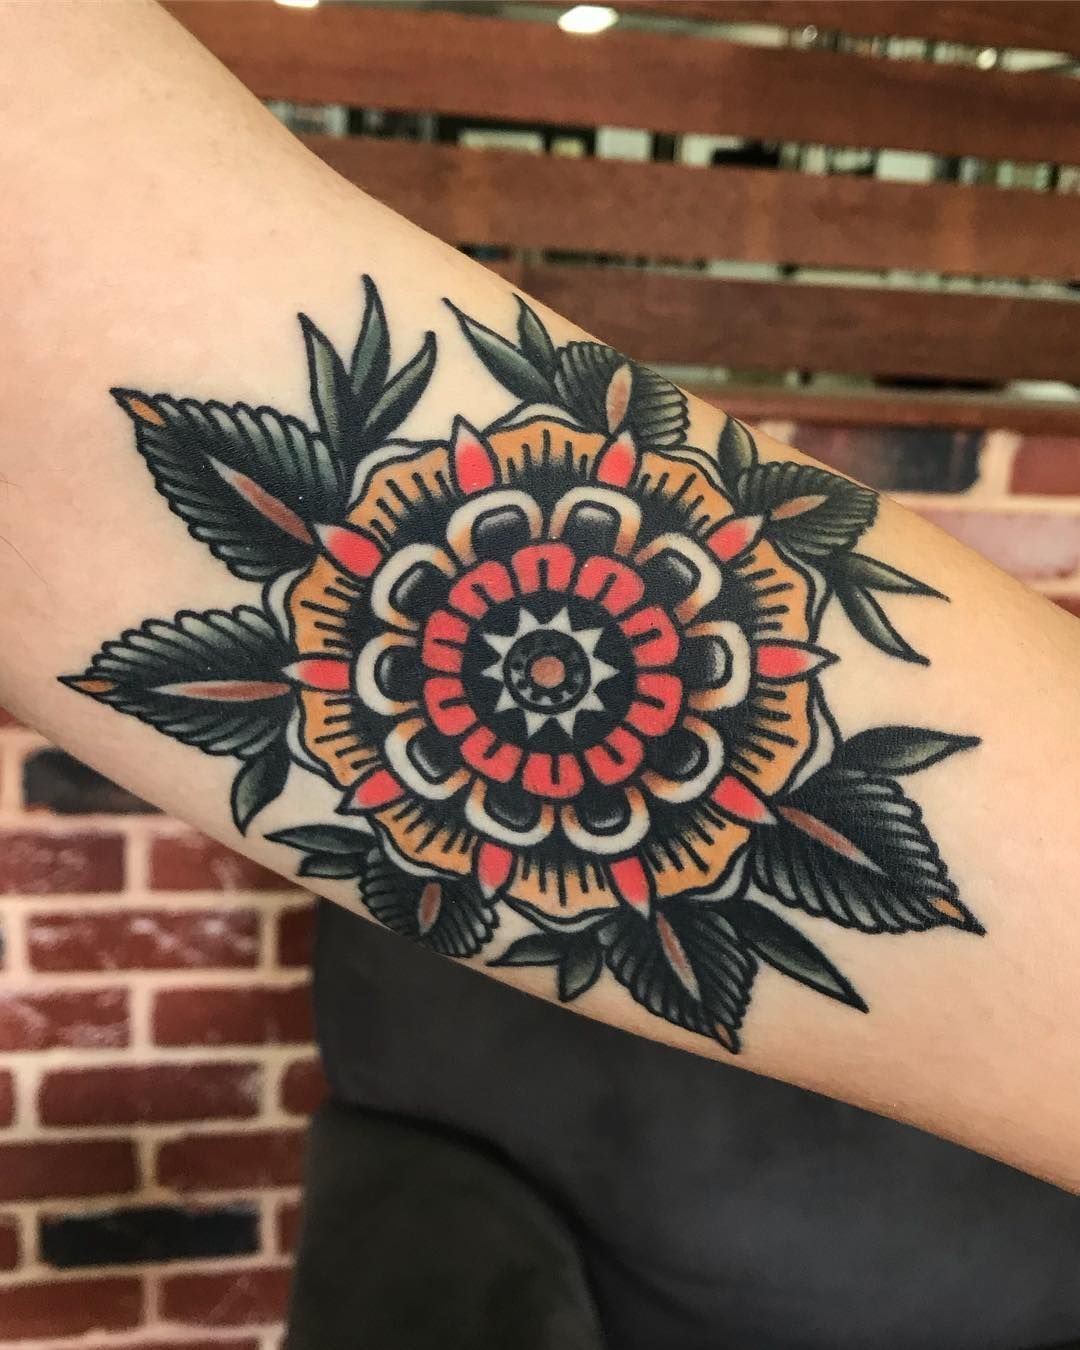 Foothills Electric Tattoo On Instagram Healed Bicep Flower On Cameron Thanks Mate Tattoos Elbow Tattoos Knee Tattoo